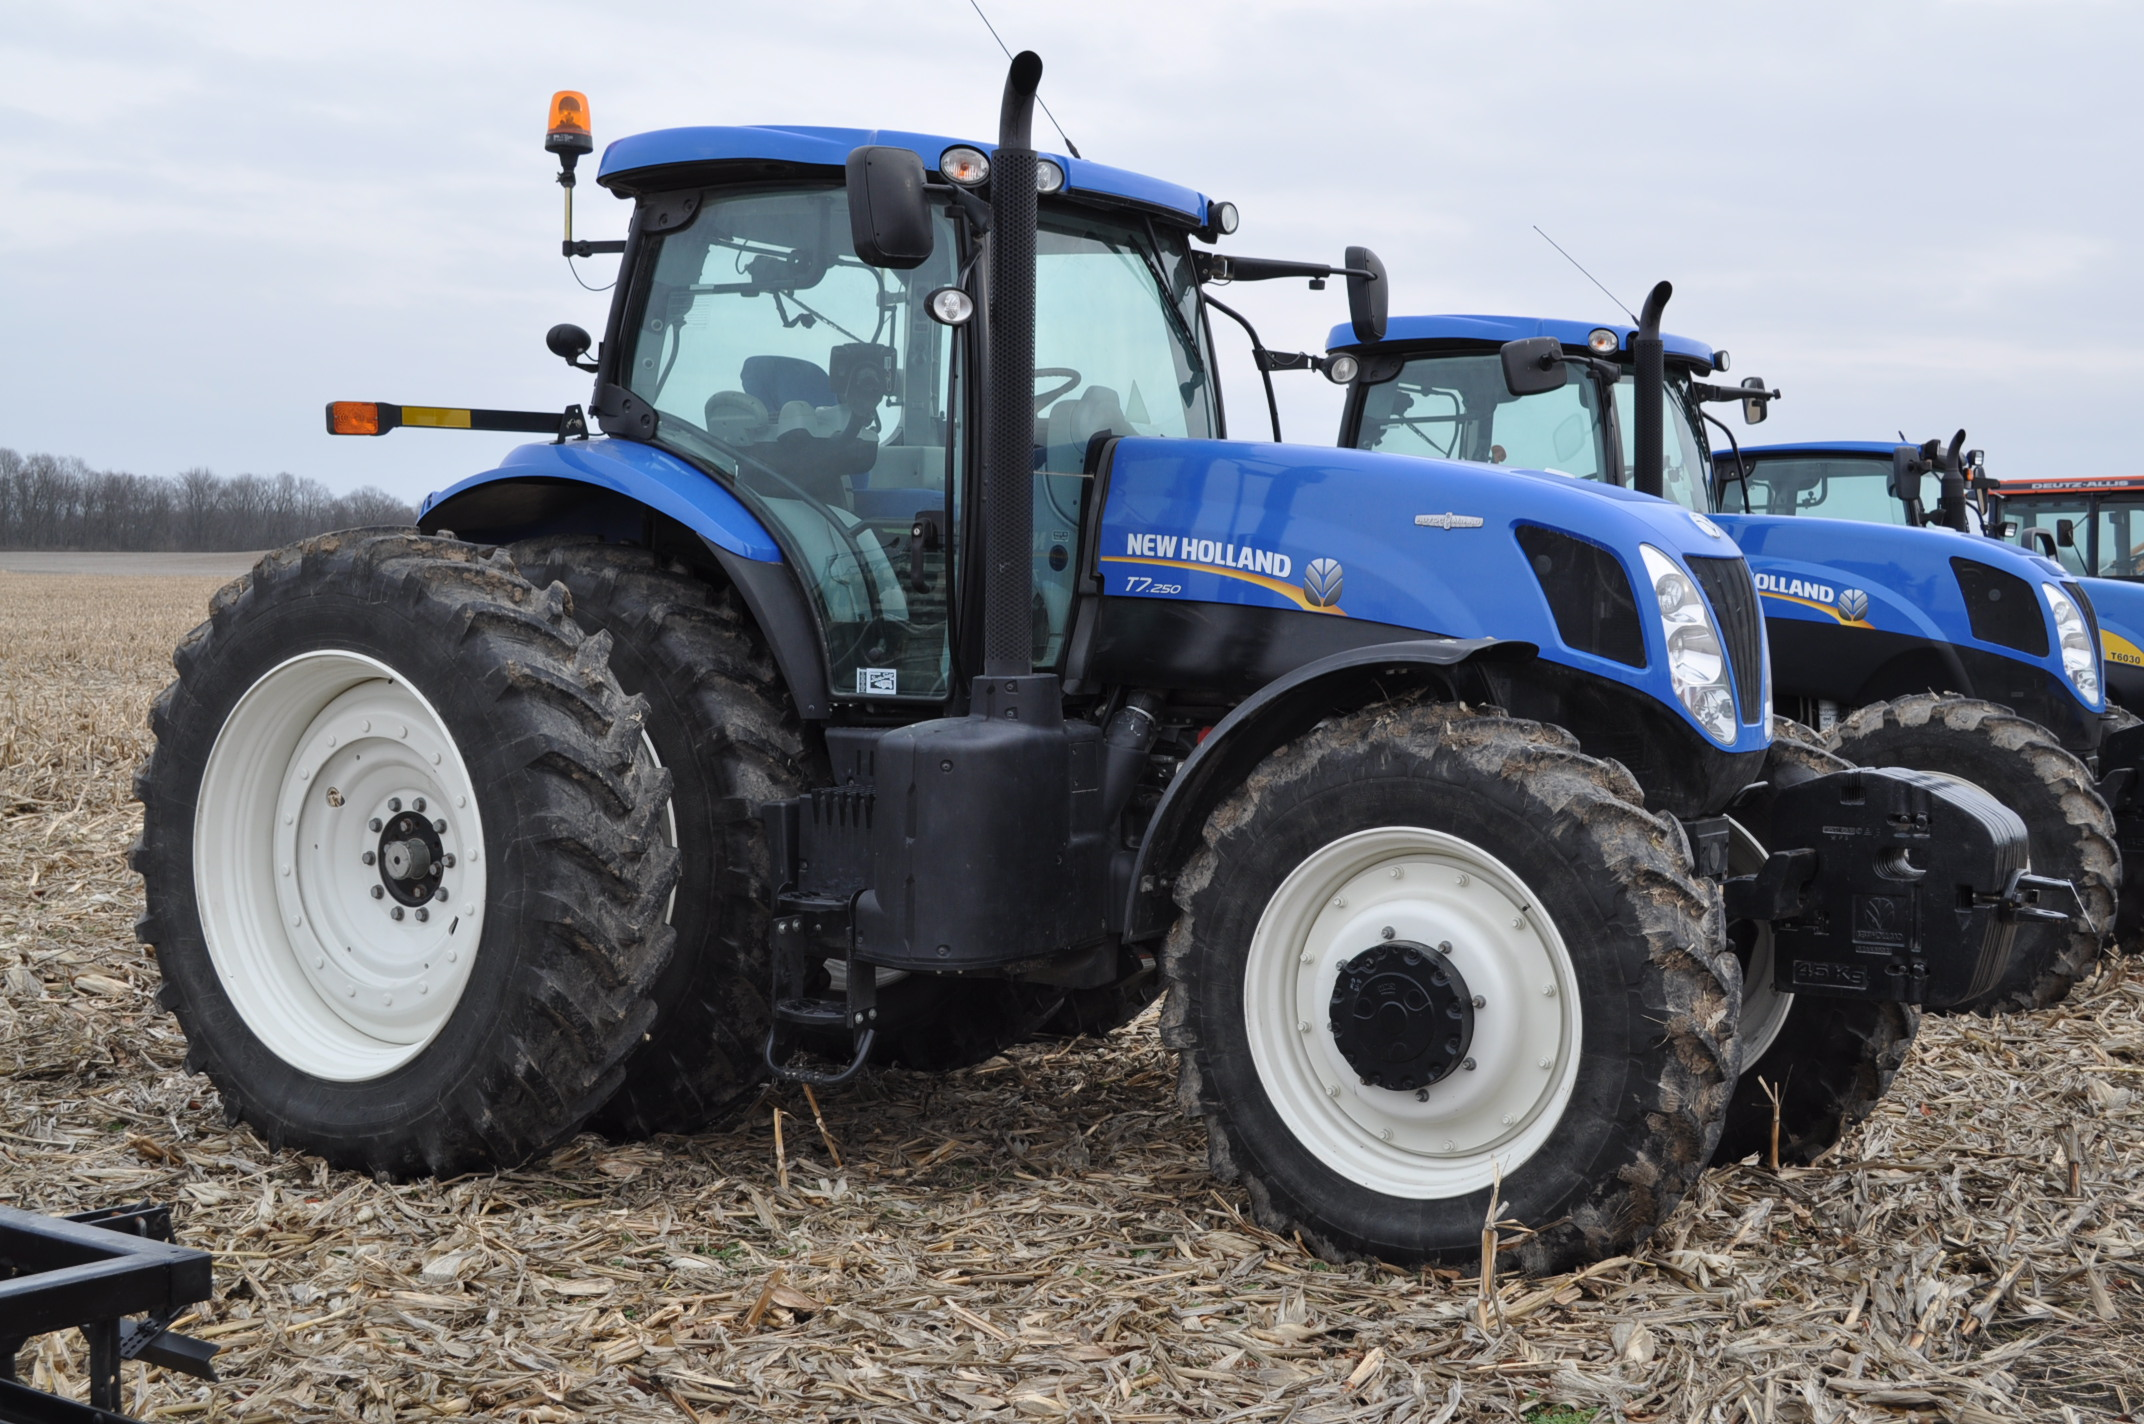 New Holland T7.250 tractor, 480/80 R 46 duals, Michelin 380/85 R 34 front, Super Steer, front wts, - Image 4 of 28